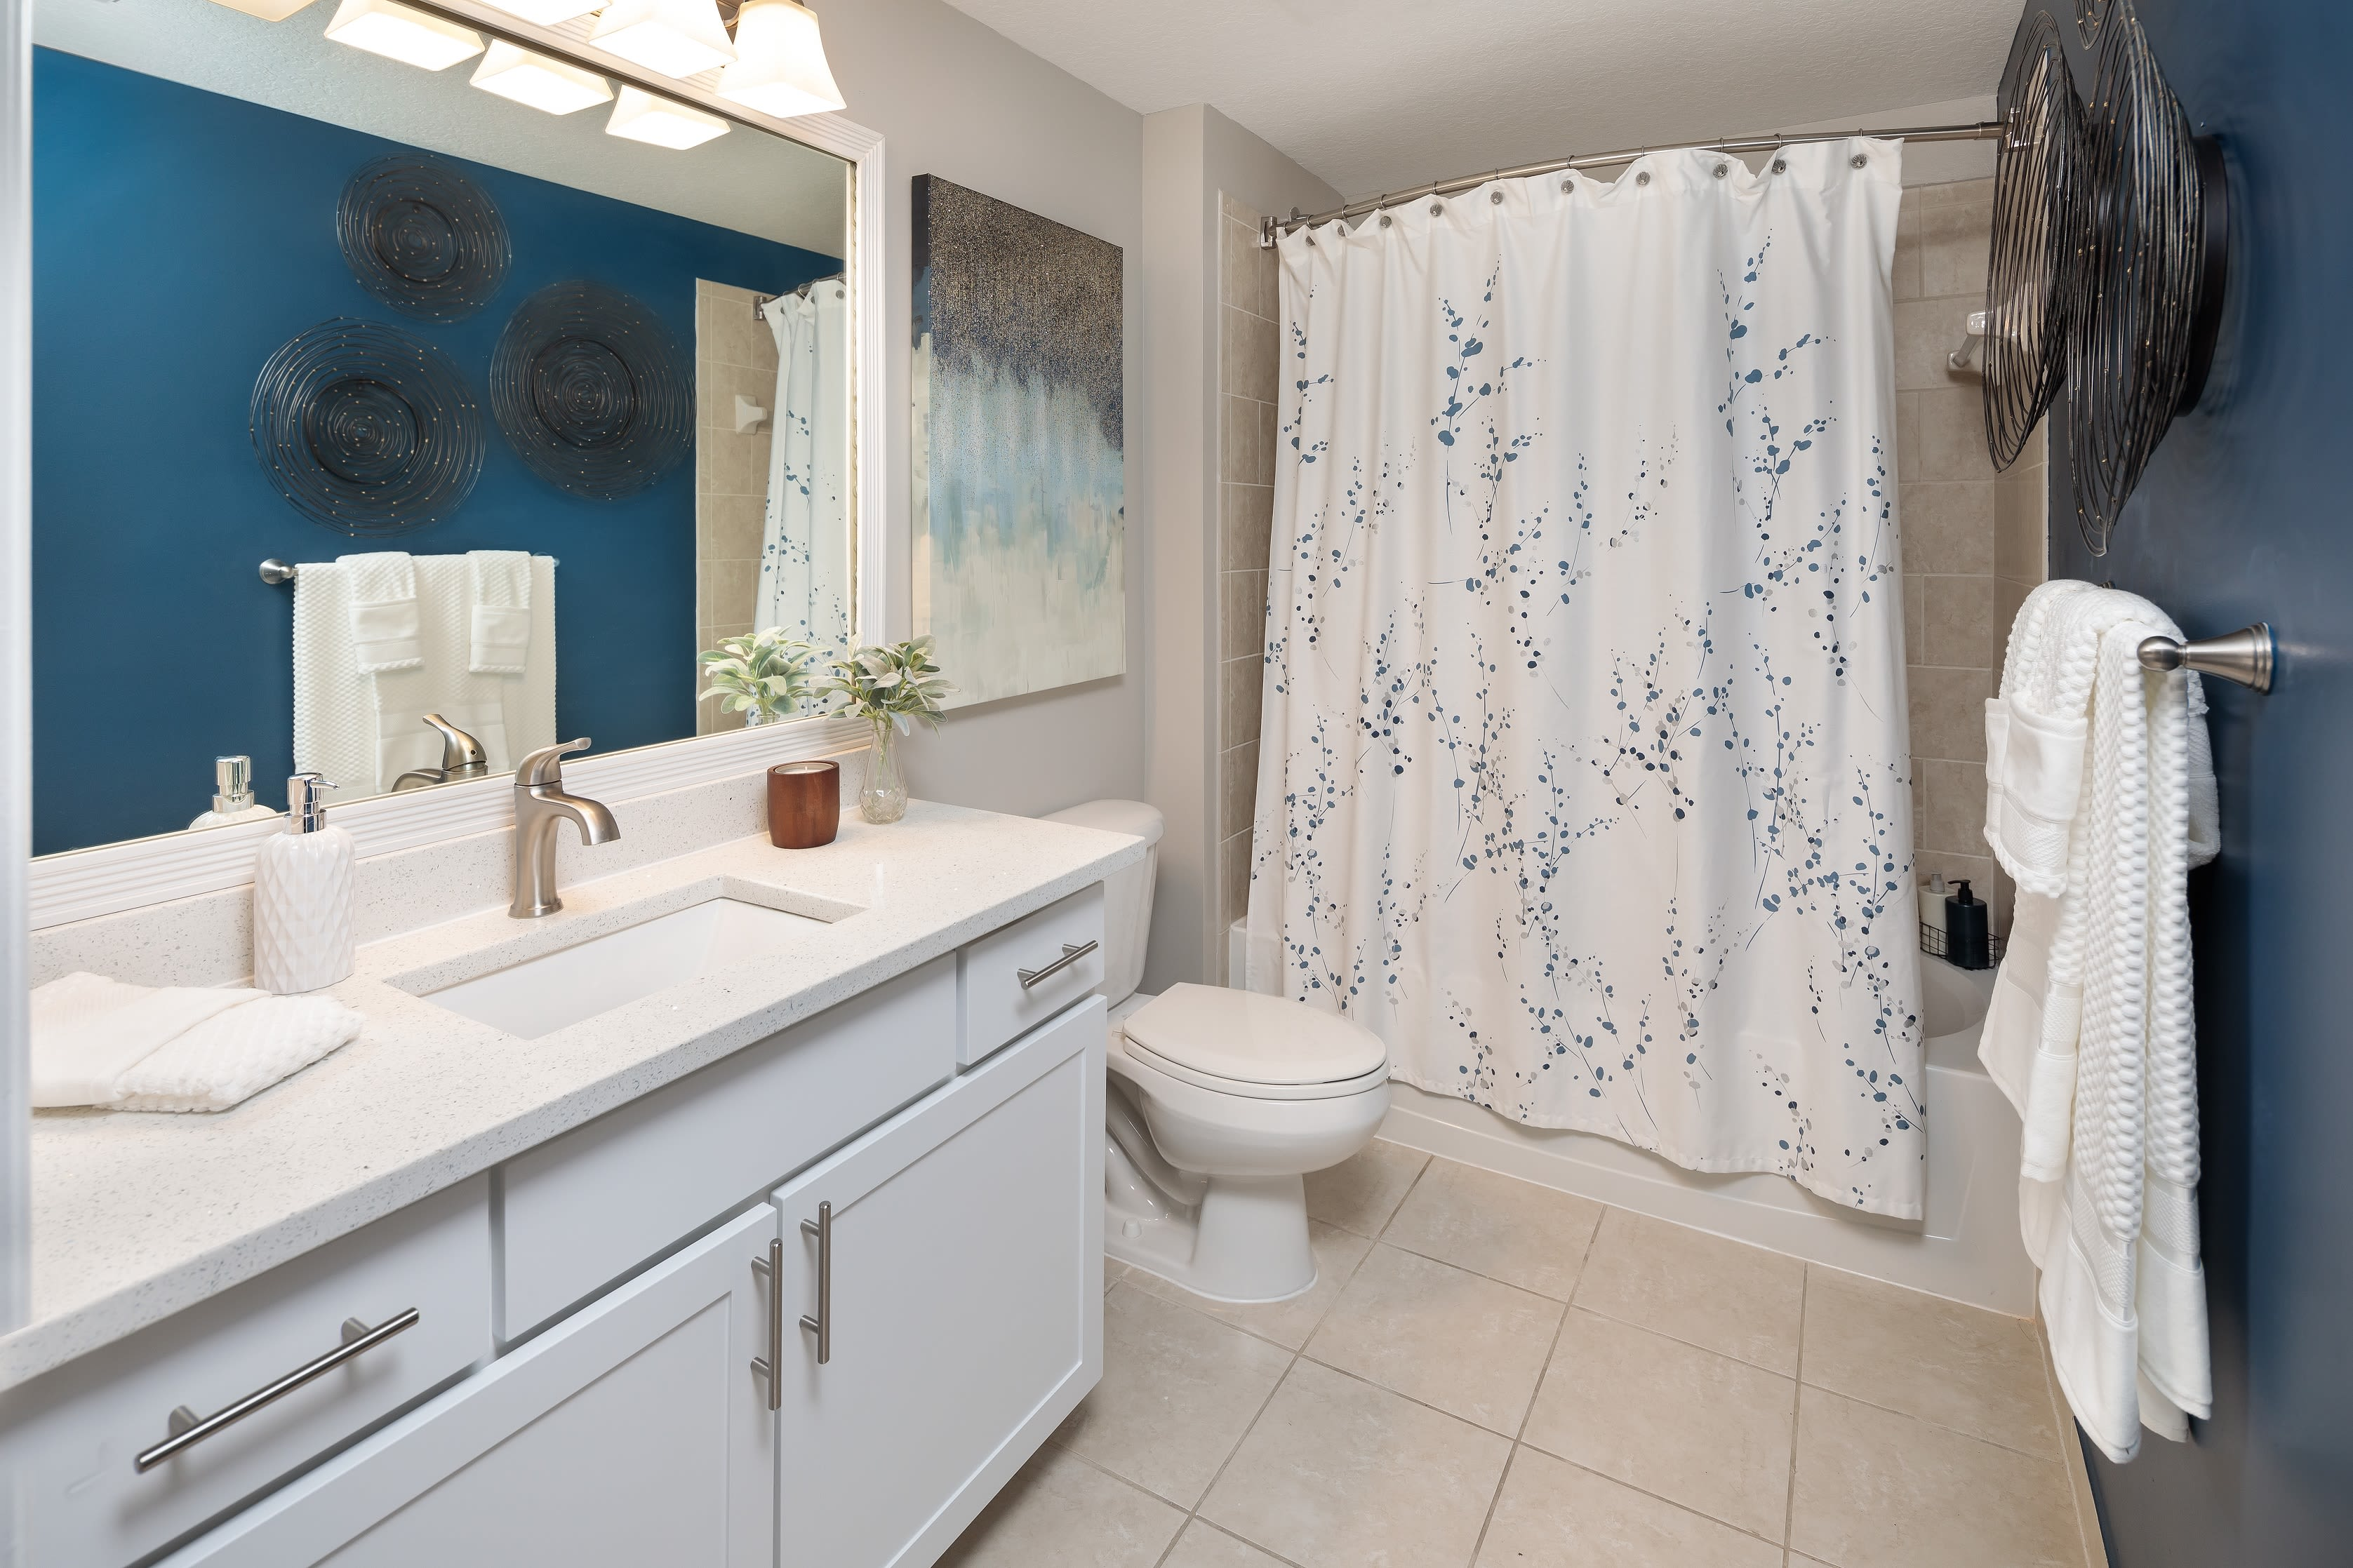 Nice bathroom with shower and large vanity mirror at The Pearl in Ft Lauderdale, Florida